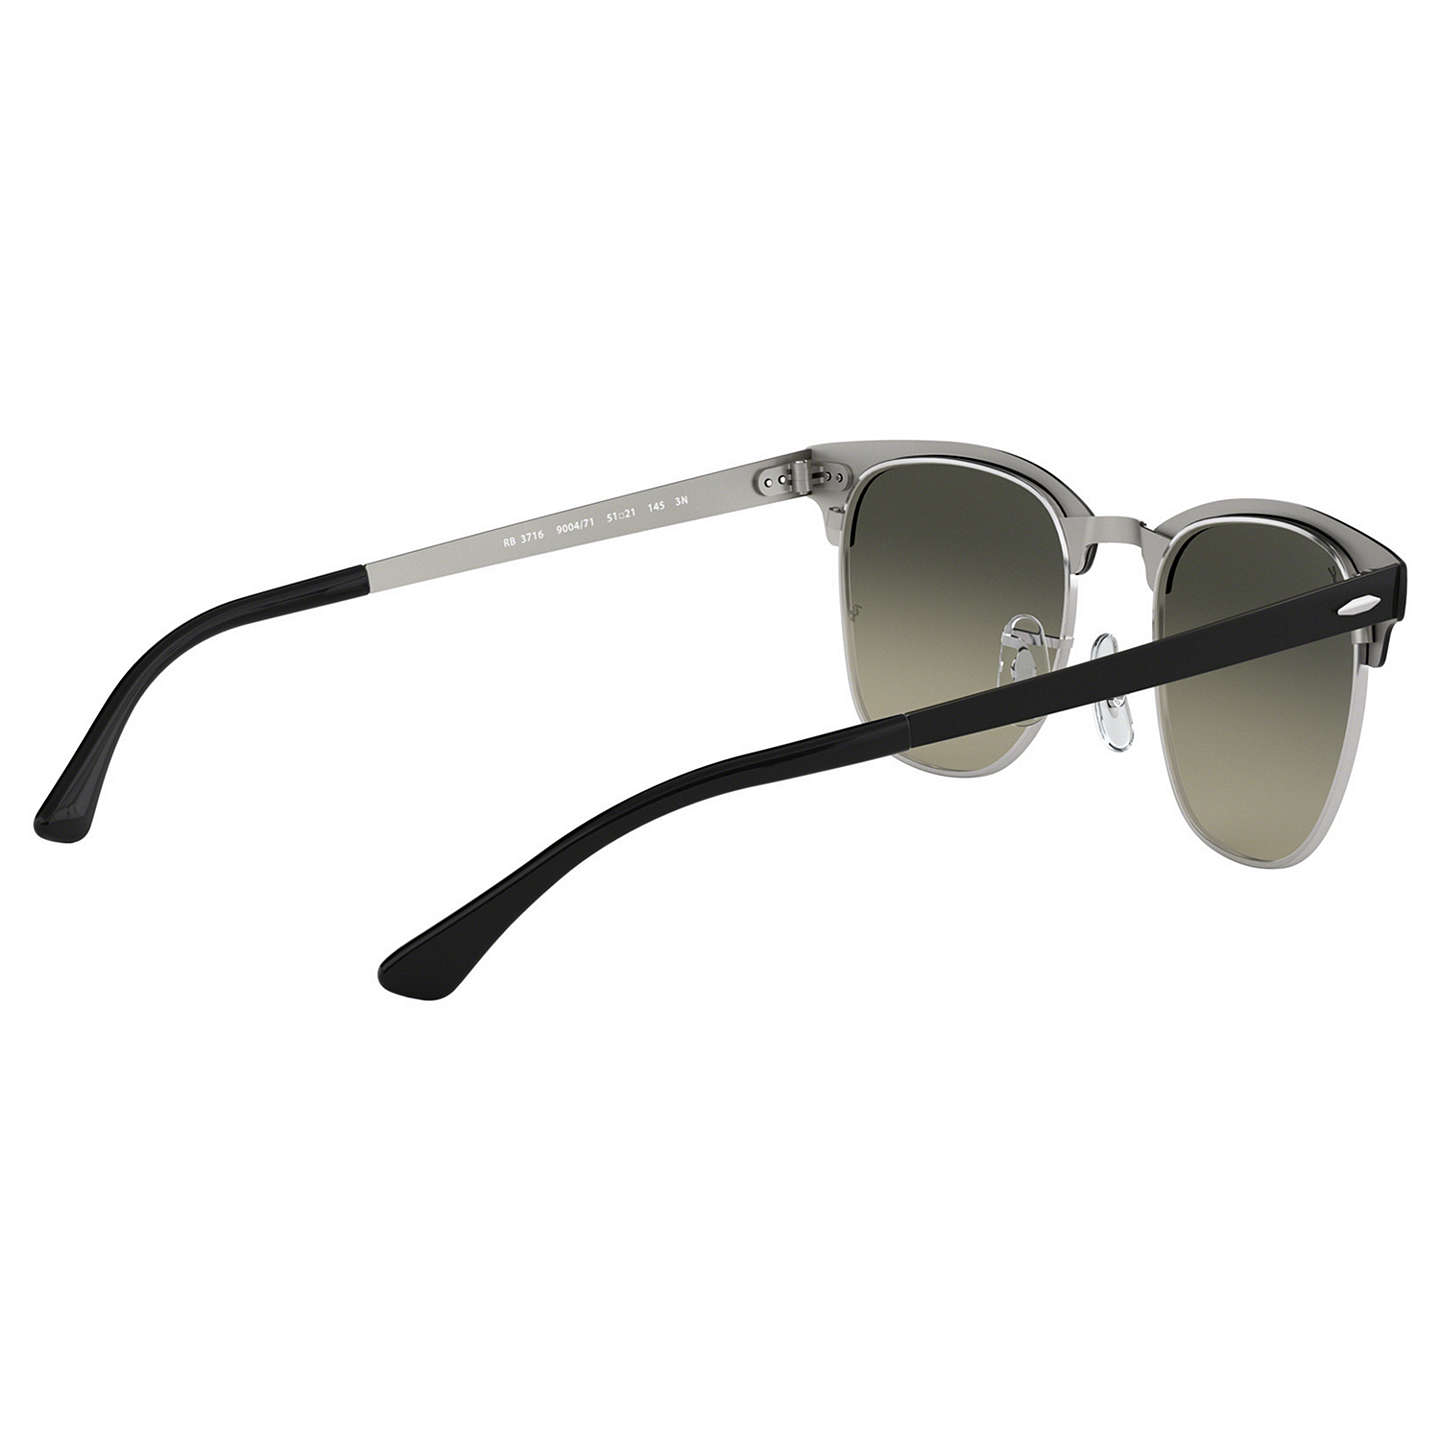 BuyRay-Ban RB3716 Unisex Square Sunglasses, Black/Green Gradient Online at johnlewis.com